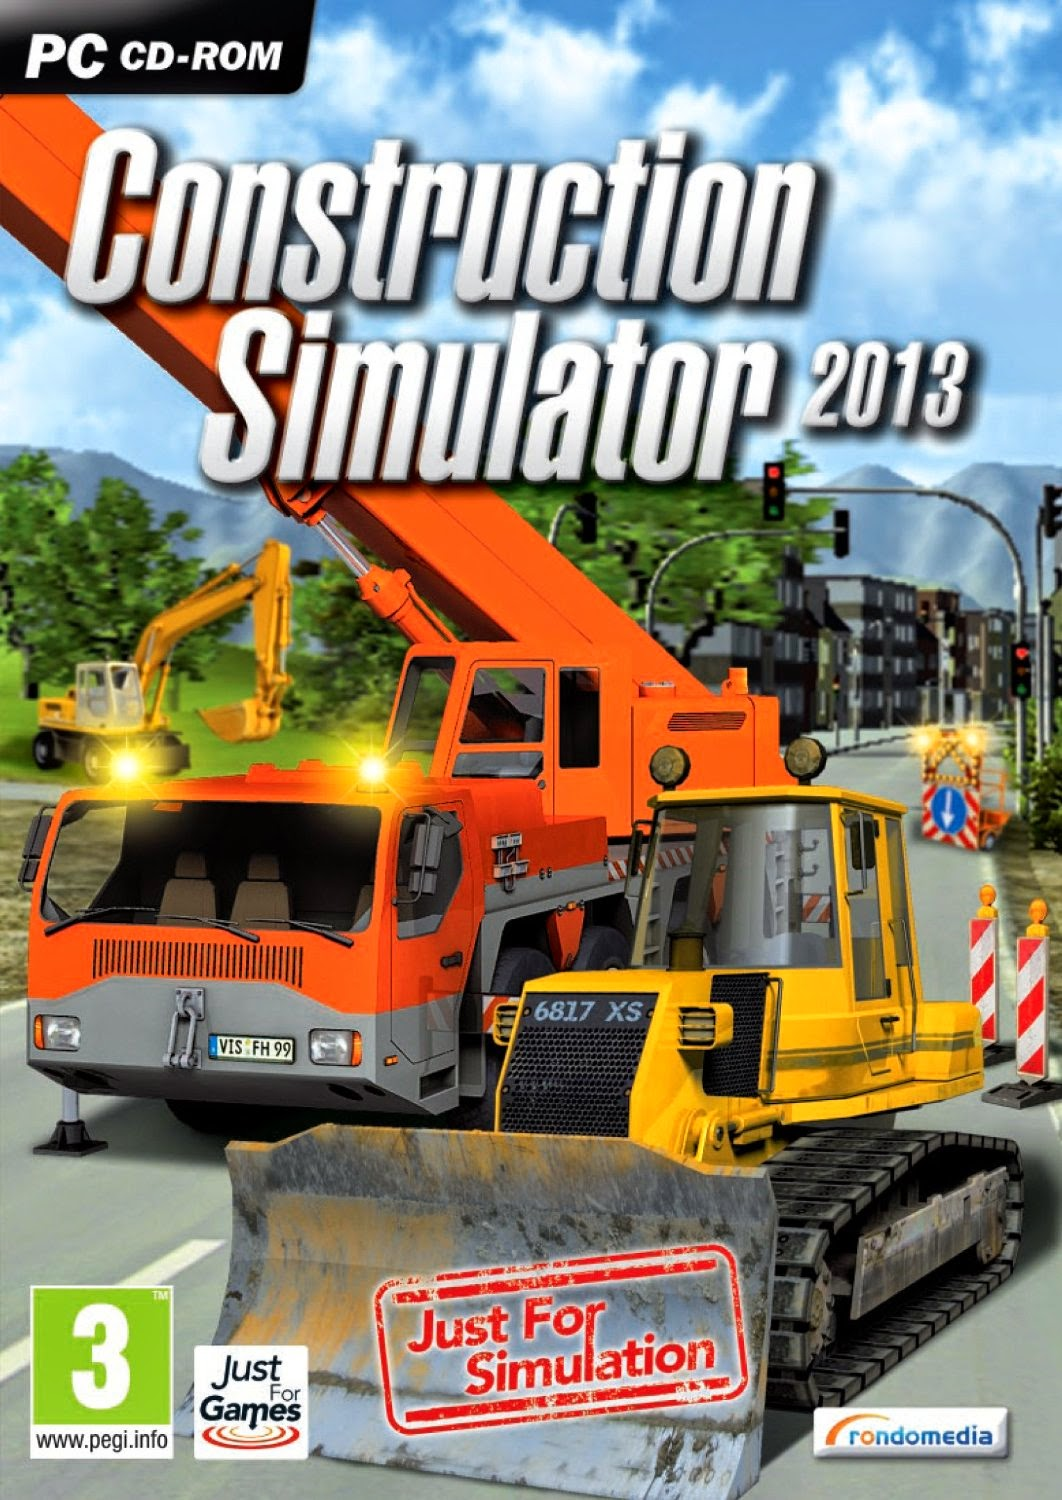 construction simulator 2013 cracked jeux pc en ligne mods multi francais telecharger. Black Bedroom Furniture Sets. Home Design Ideas